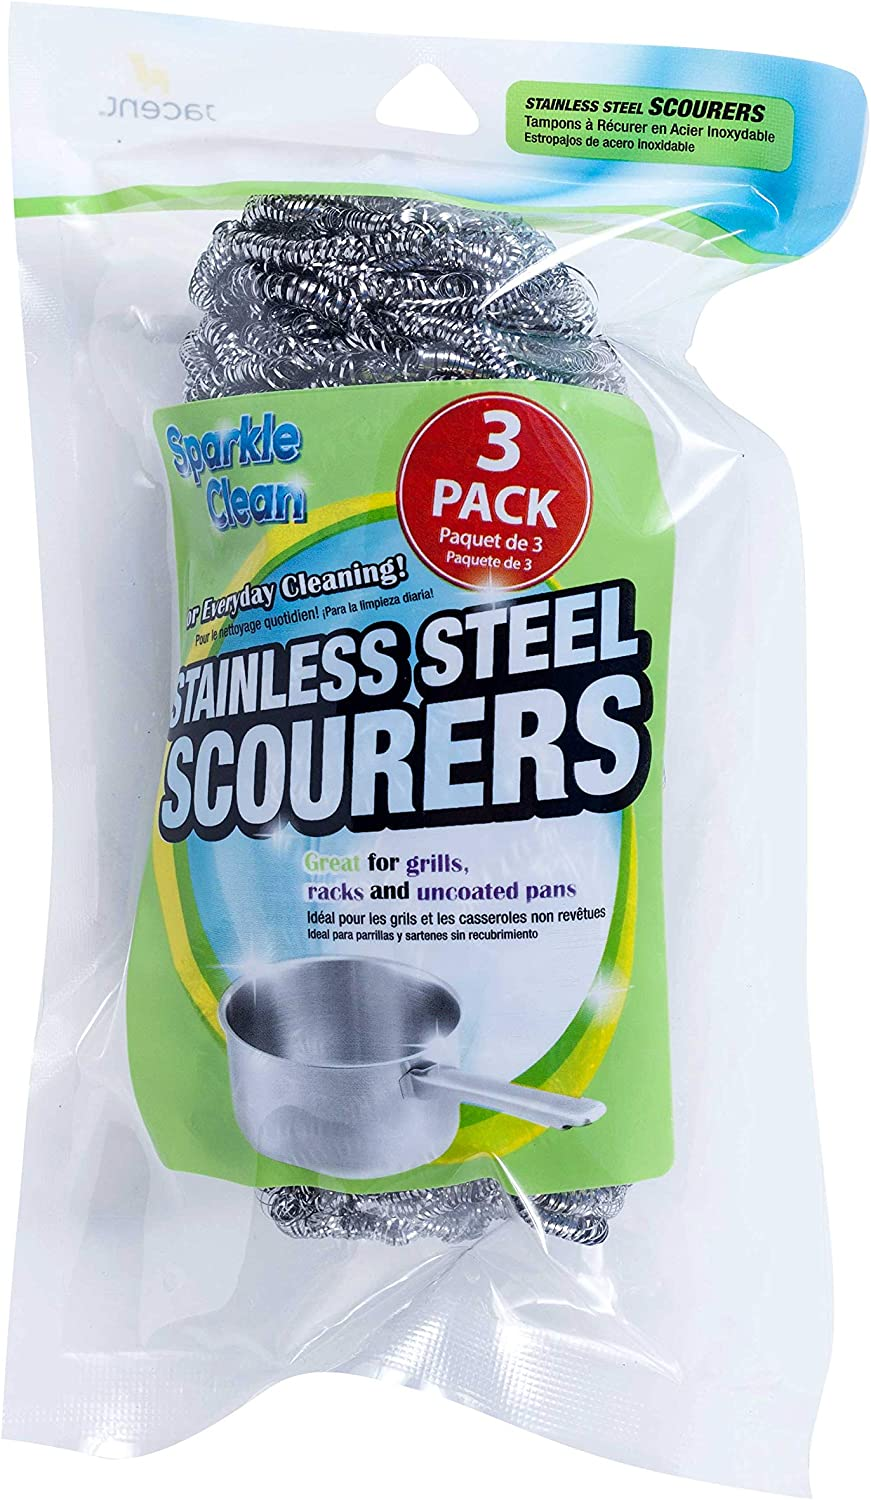 Jacent Everyday Max 44% OFF Stainless Steel Scourers Pack 3 - Per Bombing free shipping 1